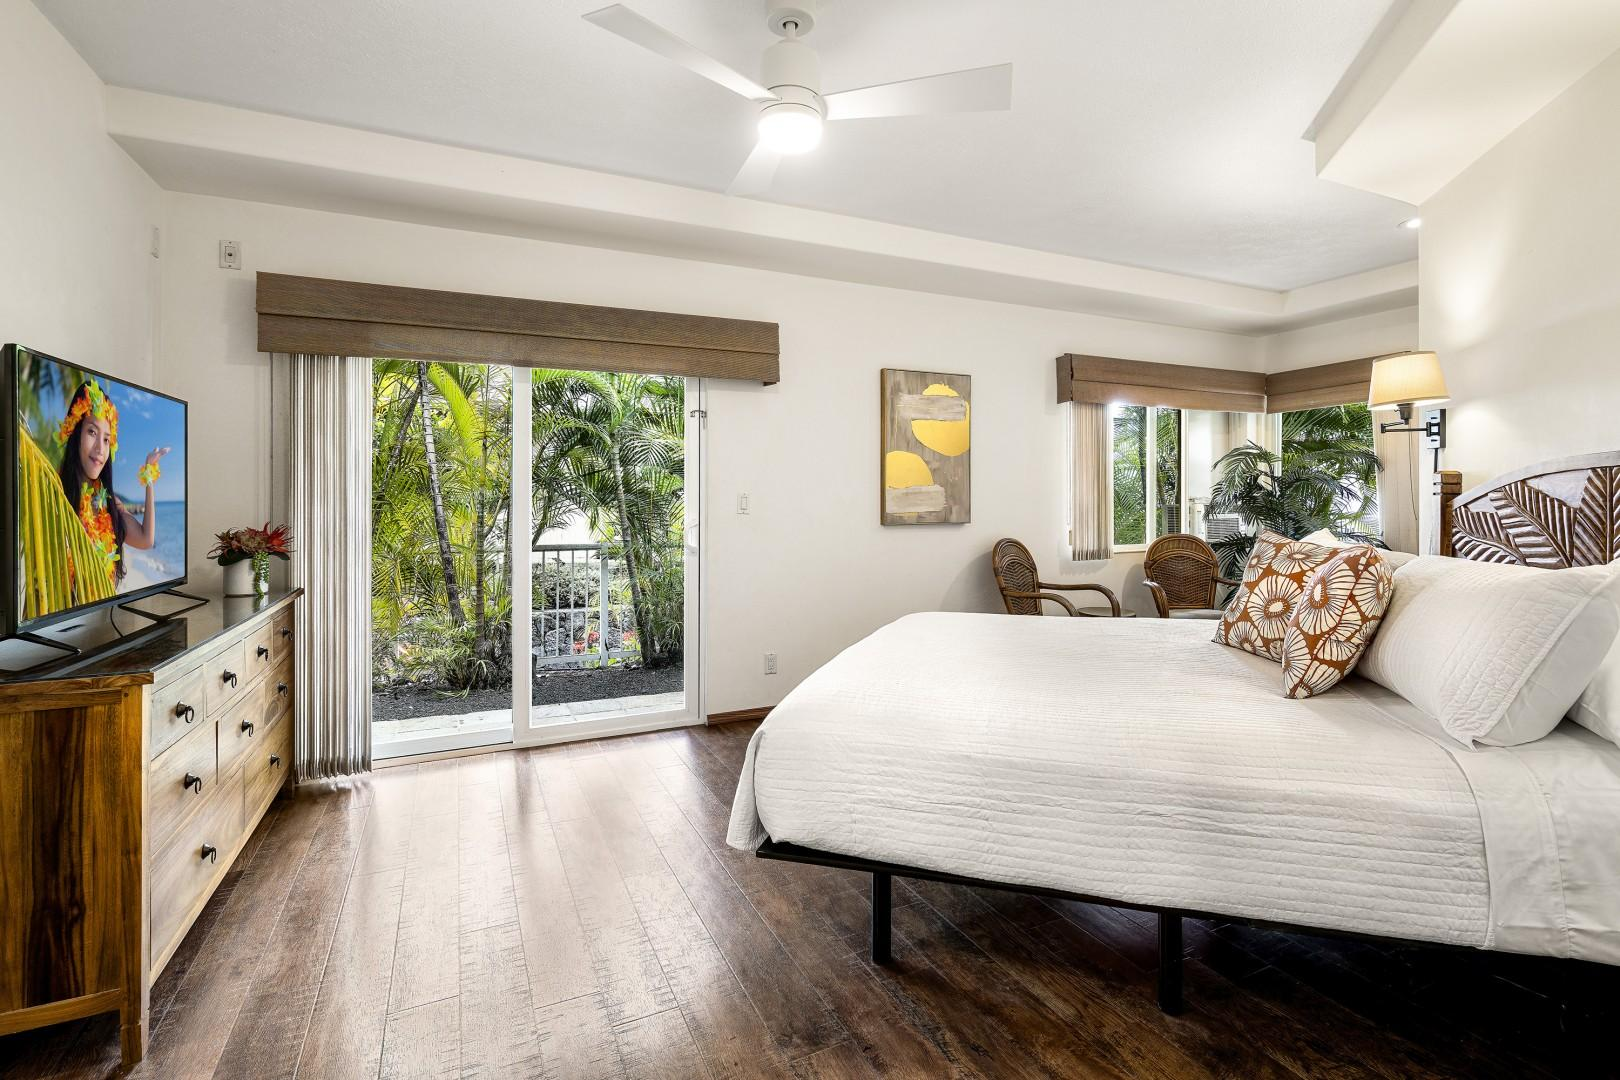 Master bedroom Featuring Cal King bed, TV, A/C and Lanai access